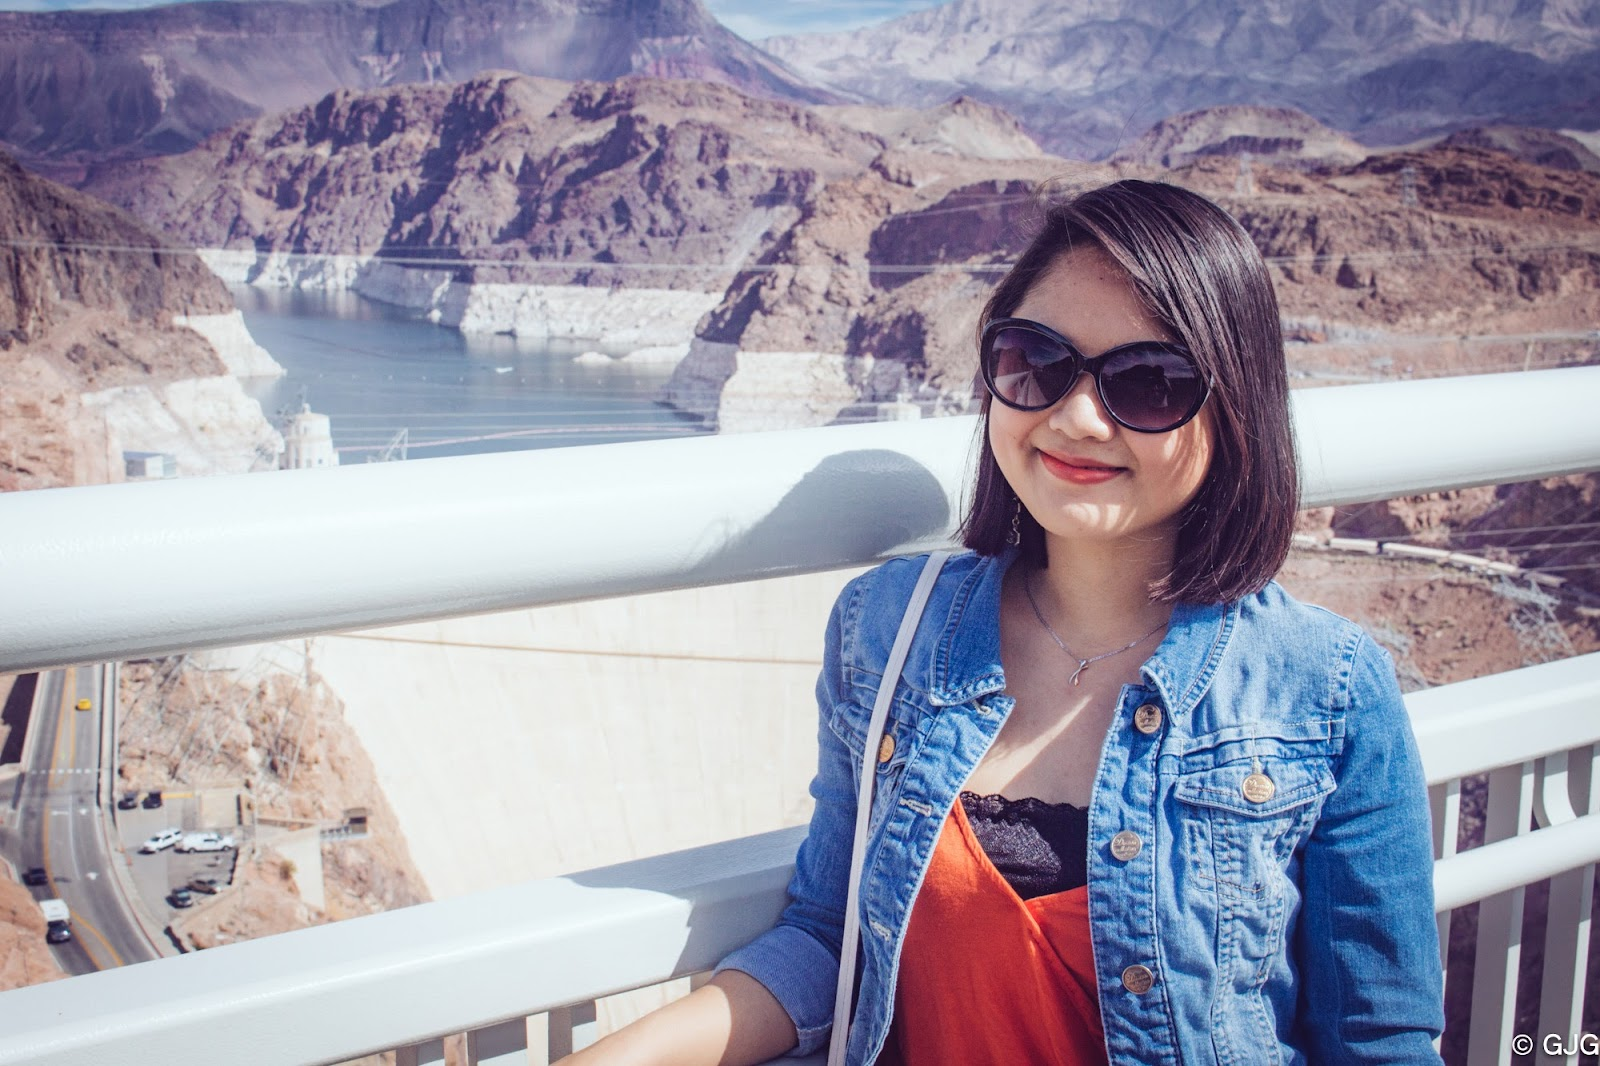 The Hoover Dam Travel Blog